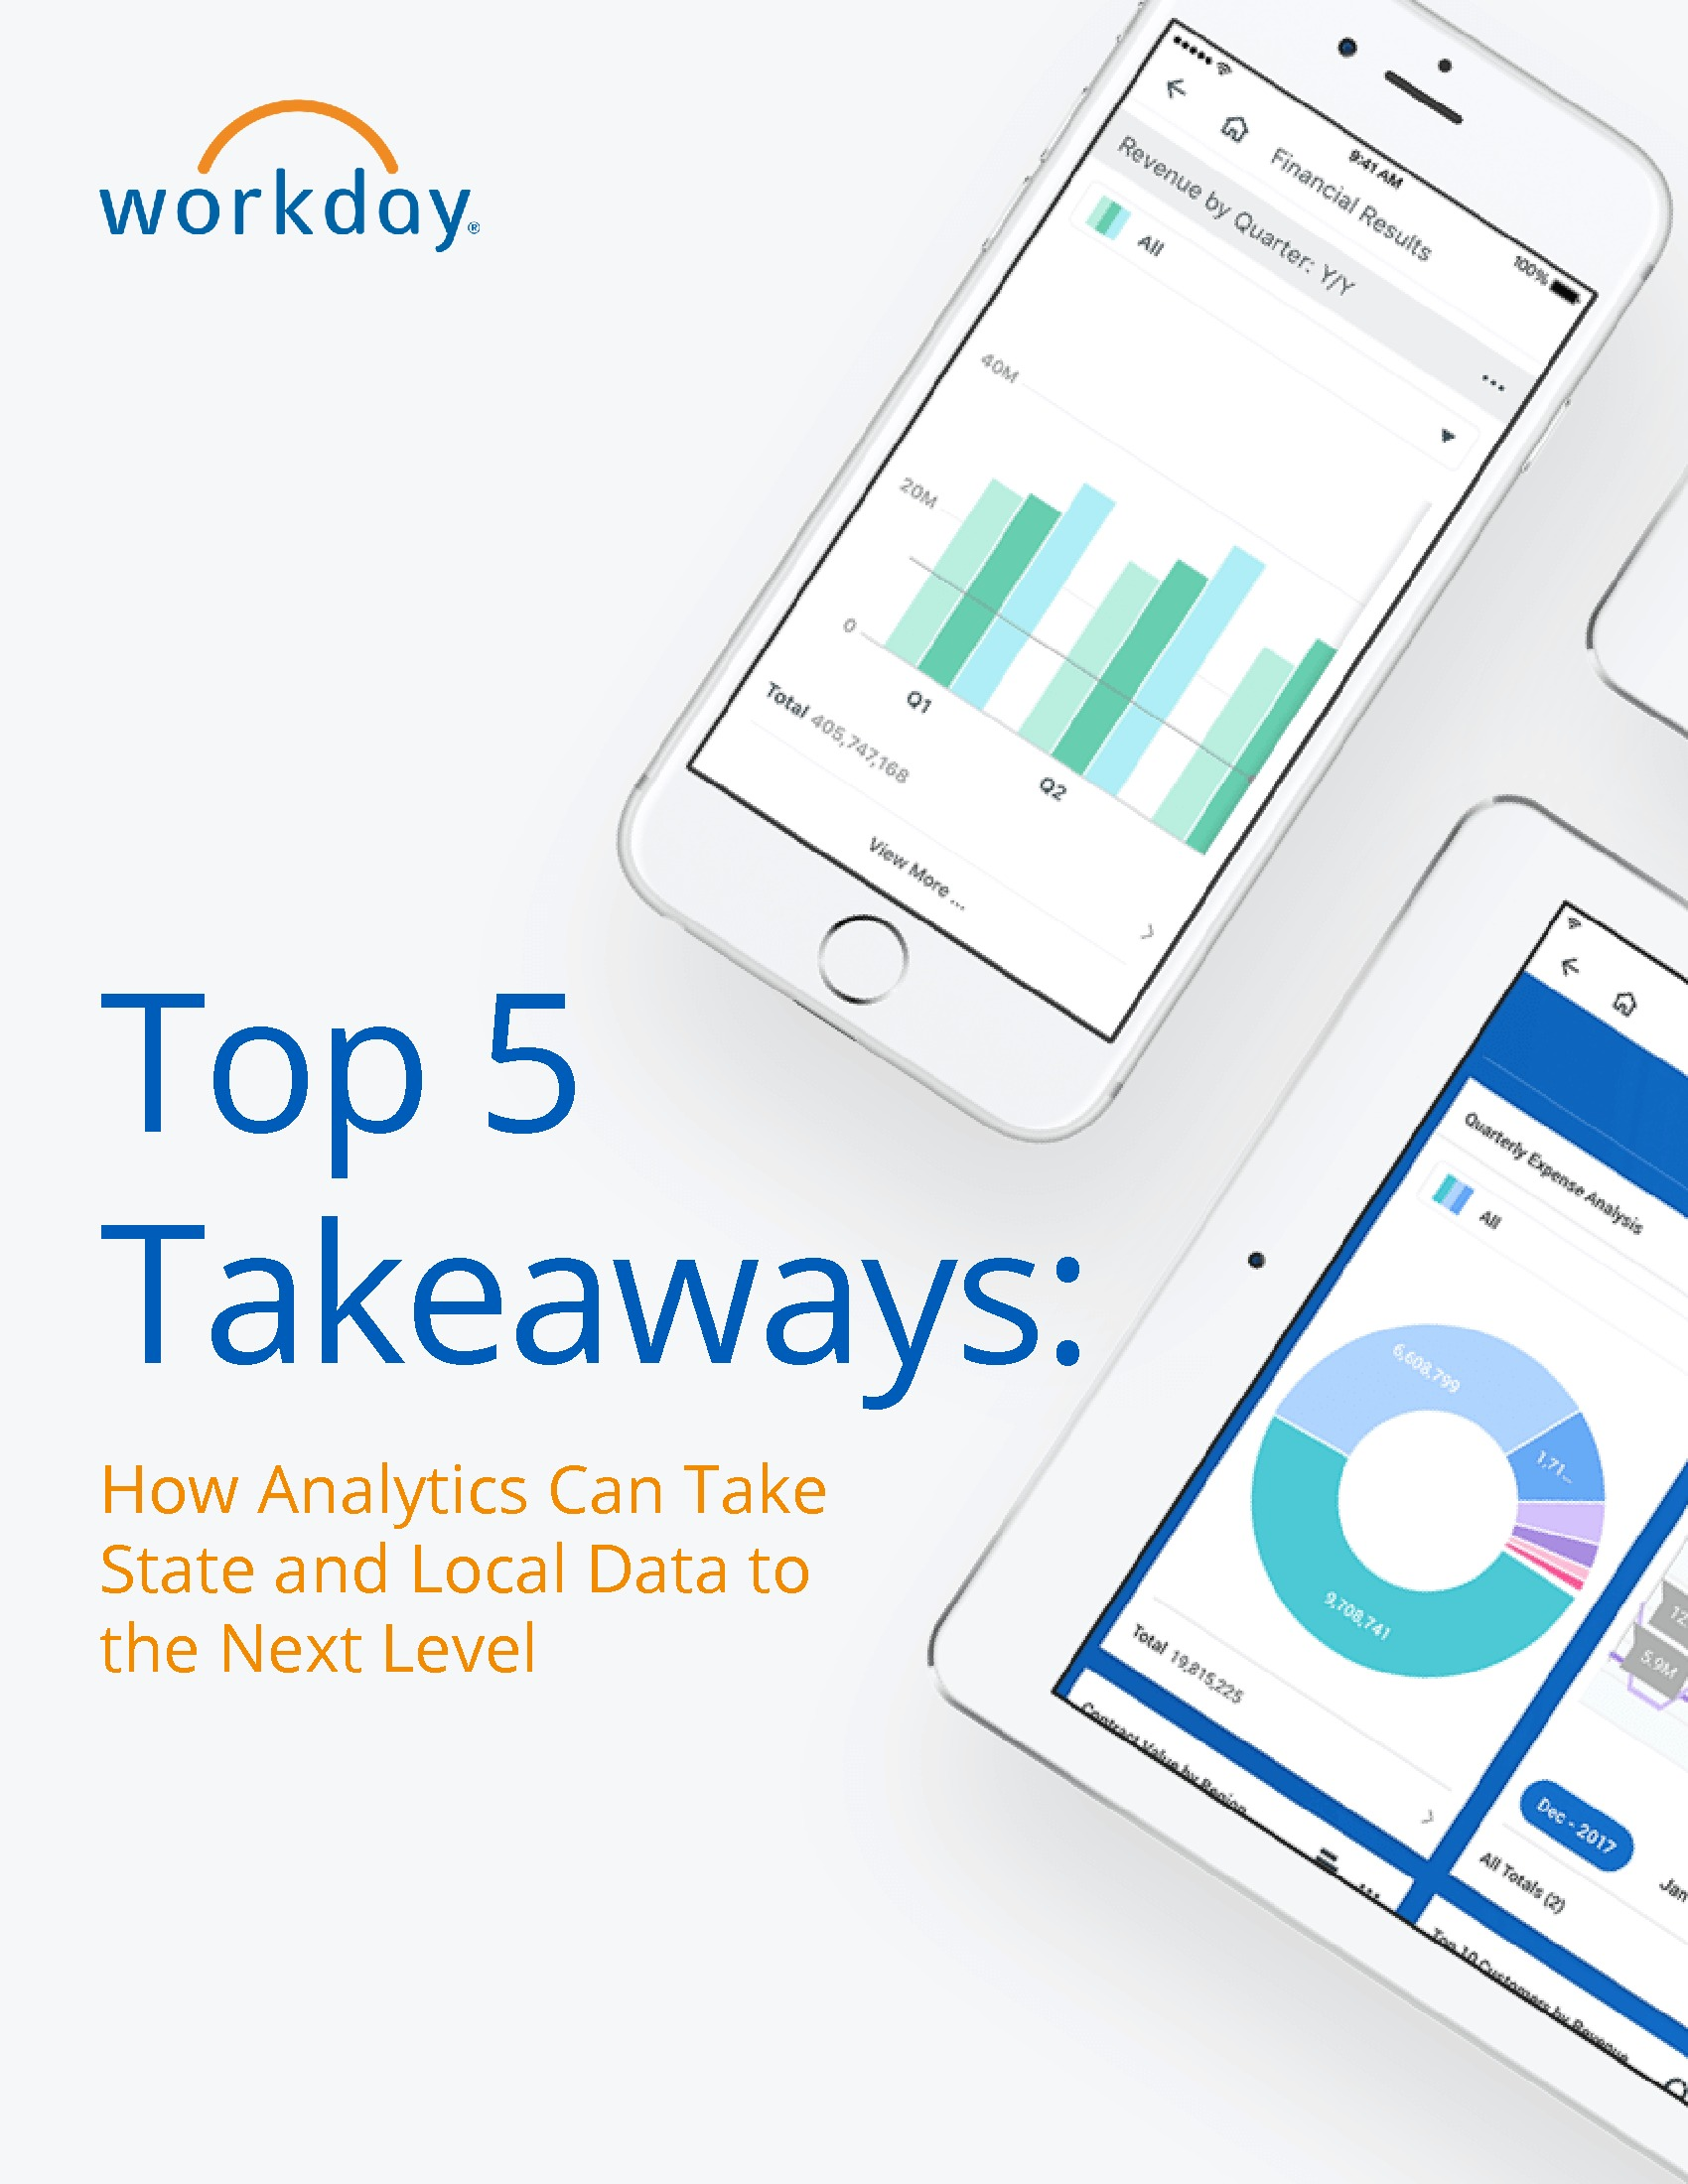 Top 5 Takeaways - How Analytics Can Take State and Local Data to the Next Level